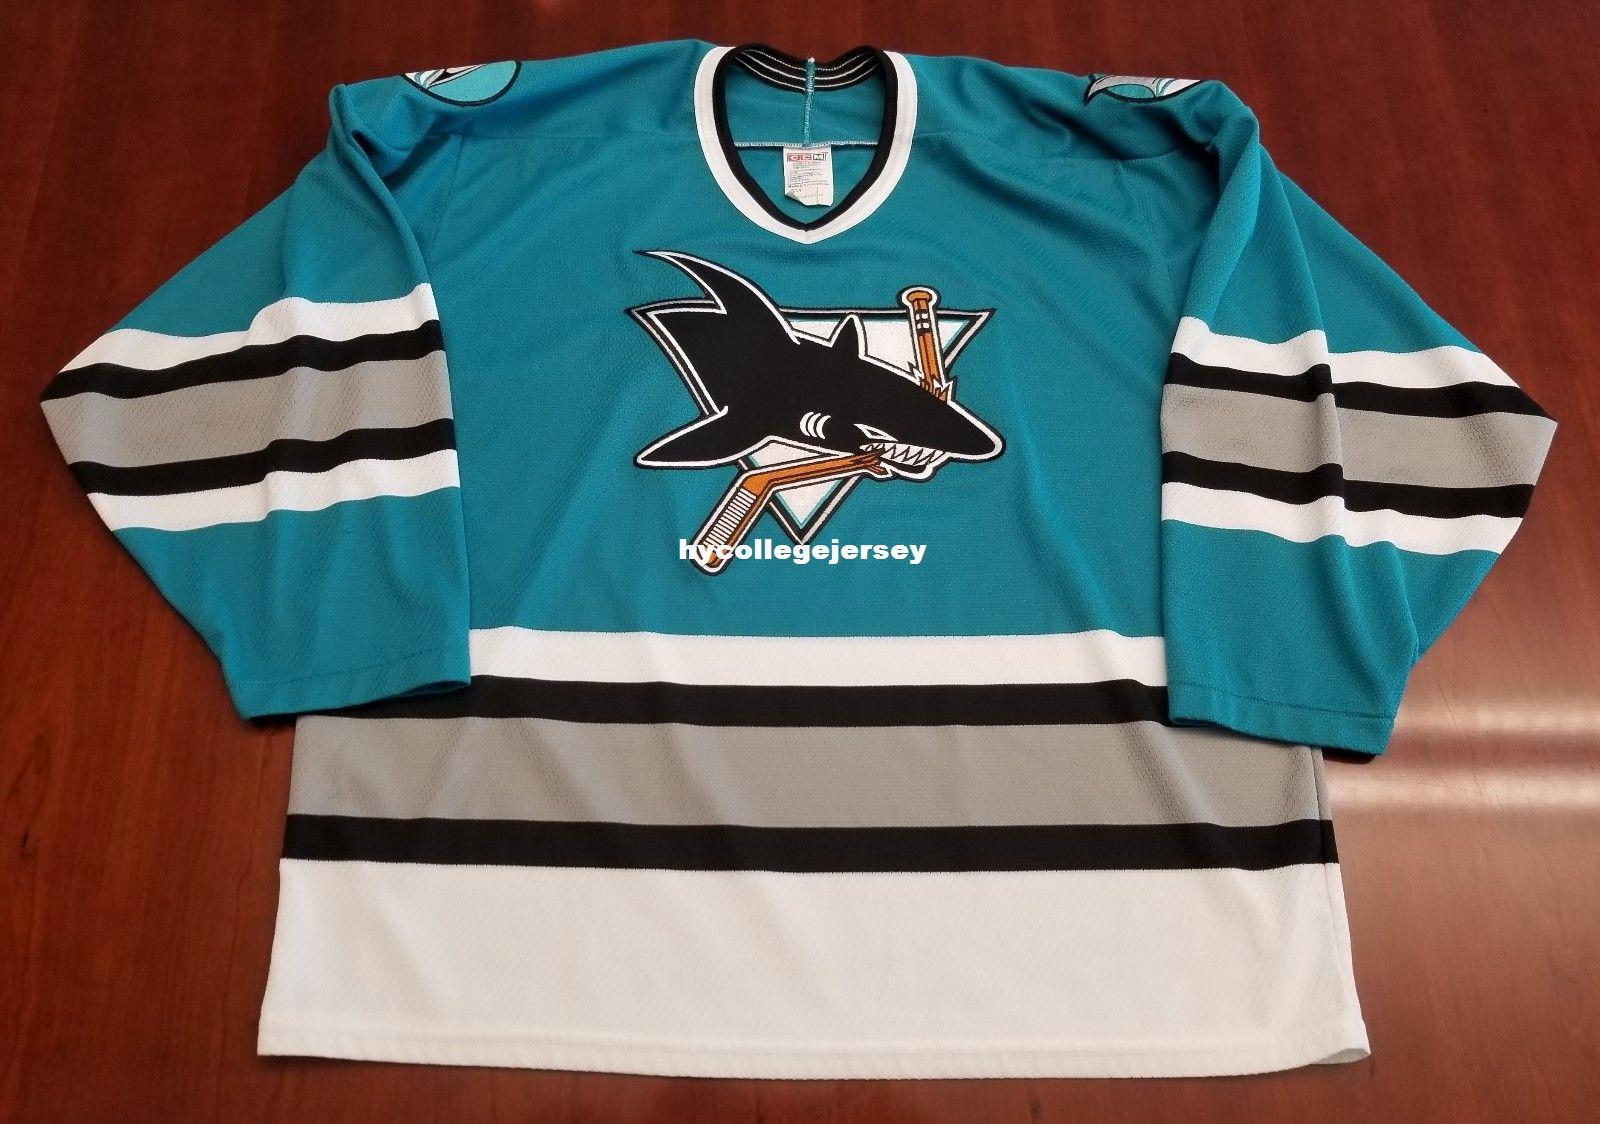 hot sale 00d9f 8c76f 2019 Wholesale Custom San Jose Sharks Vintage CCM Cheap Hockey Jersey Blue  Mens Retro Jerseys From Hycollegejersey, $27.54 | DHgate.Com